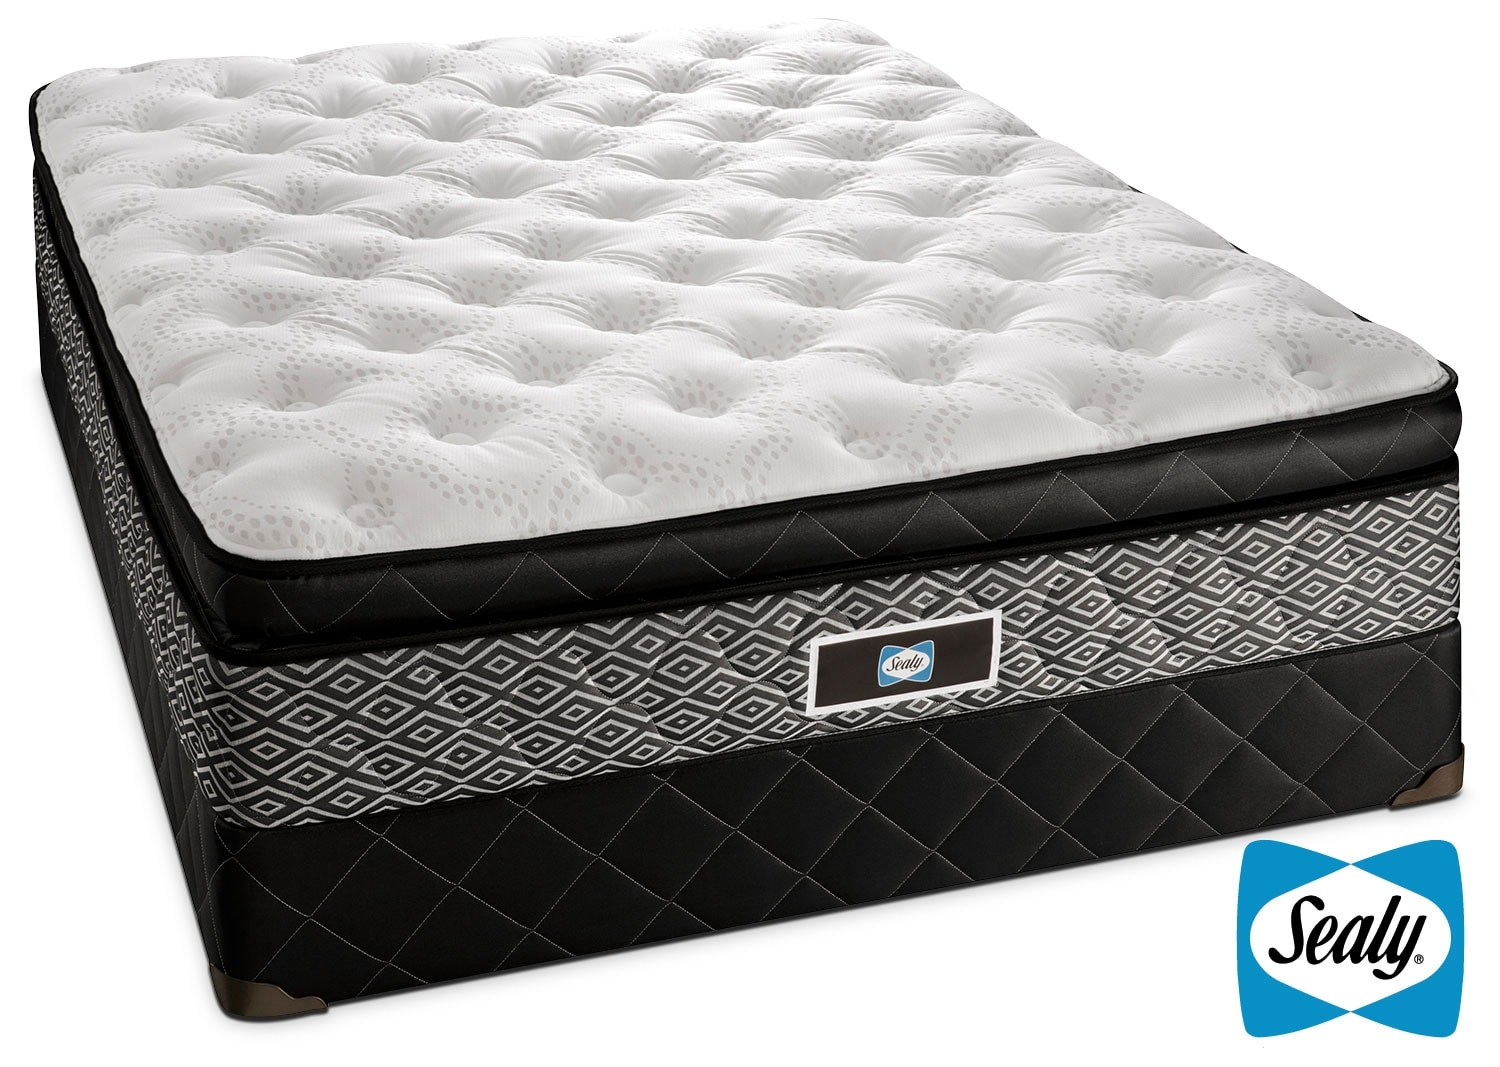 Mattresses and Bedding - Sealy Echo Plush Queen Mattress/Boxspring Set